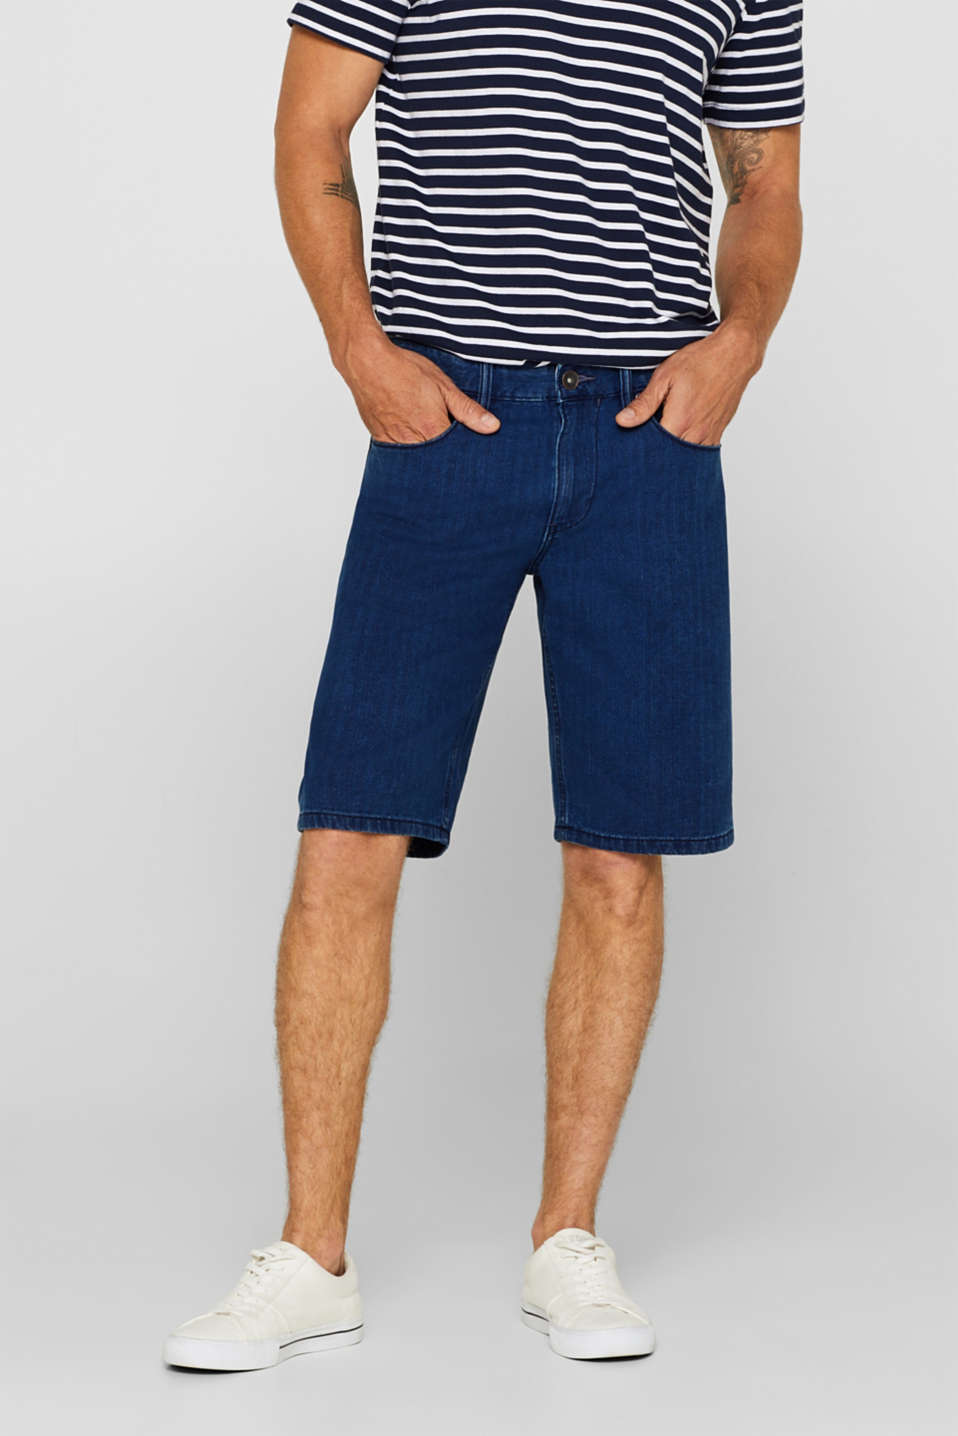 Esprit - Denim shorts in 100% cotton